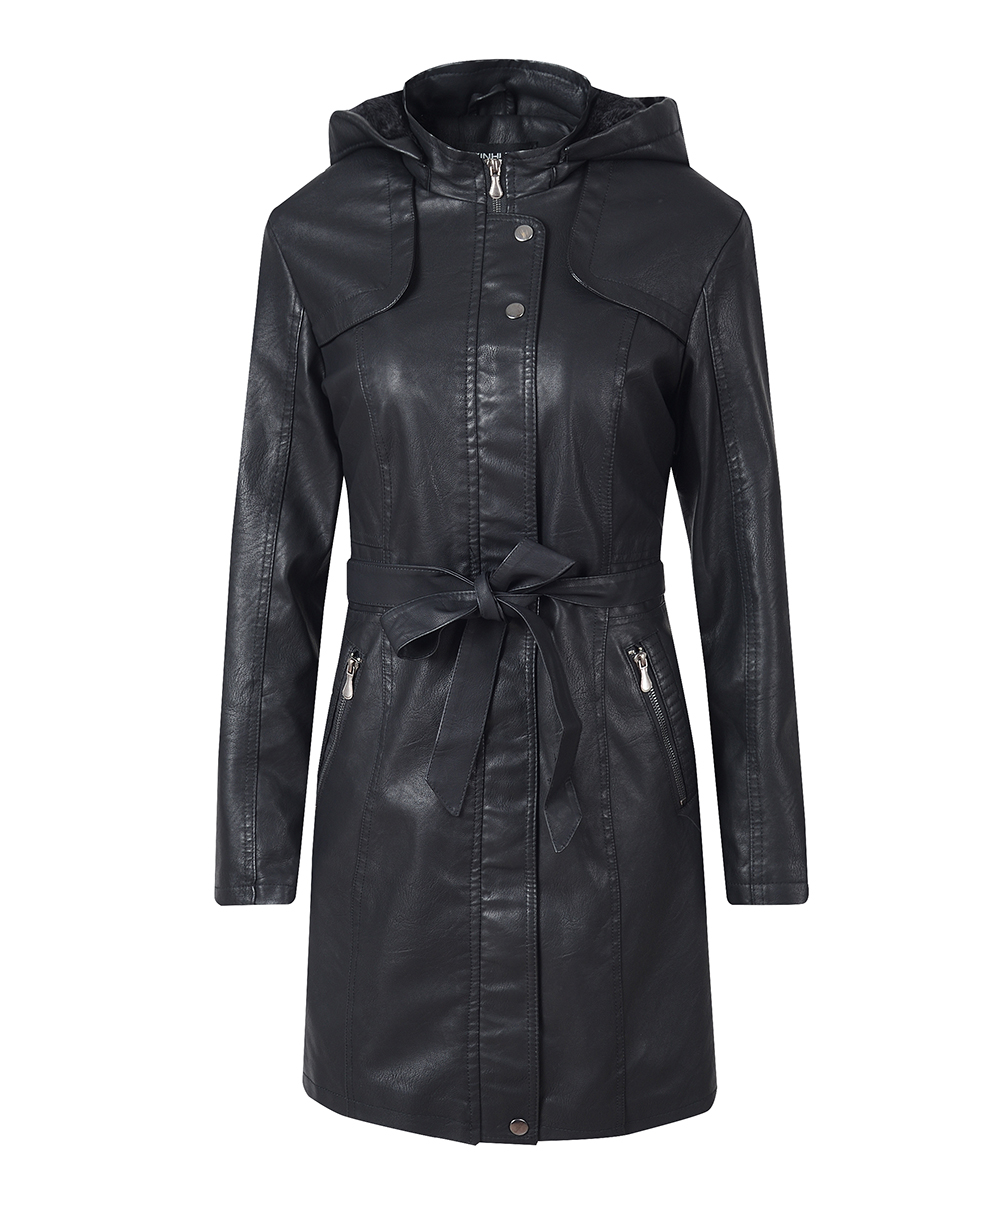 Women's Leather Jacket Coat Female Casual Solid Lapel Zipper Long Sleeve long Coat Autumn And Winter Fashion Warm Items 7